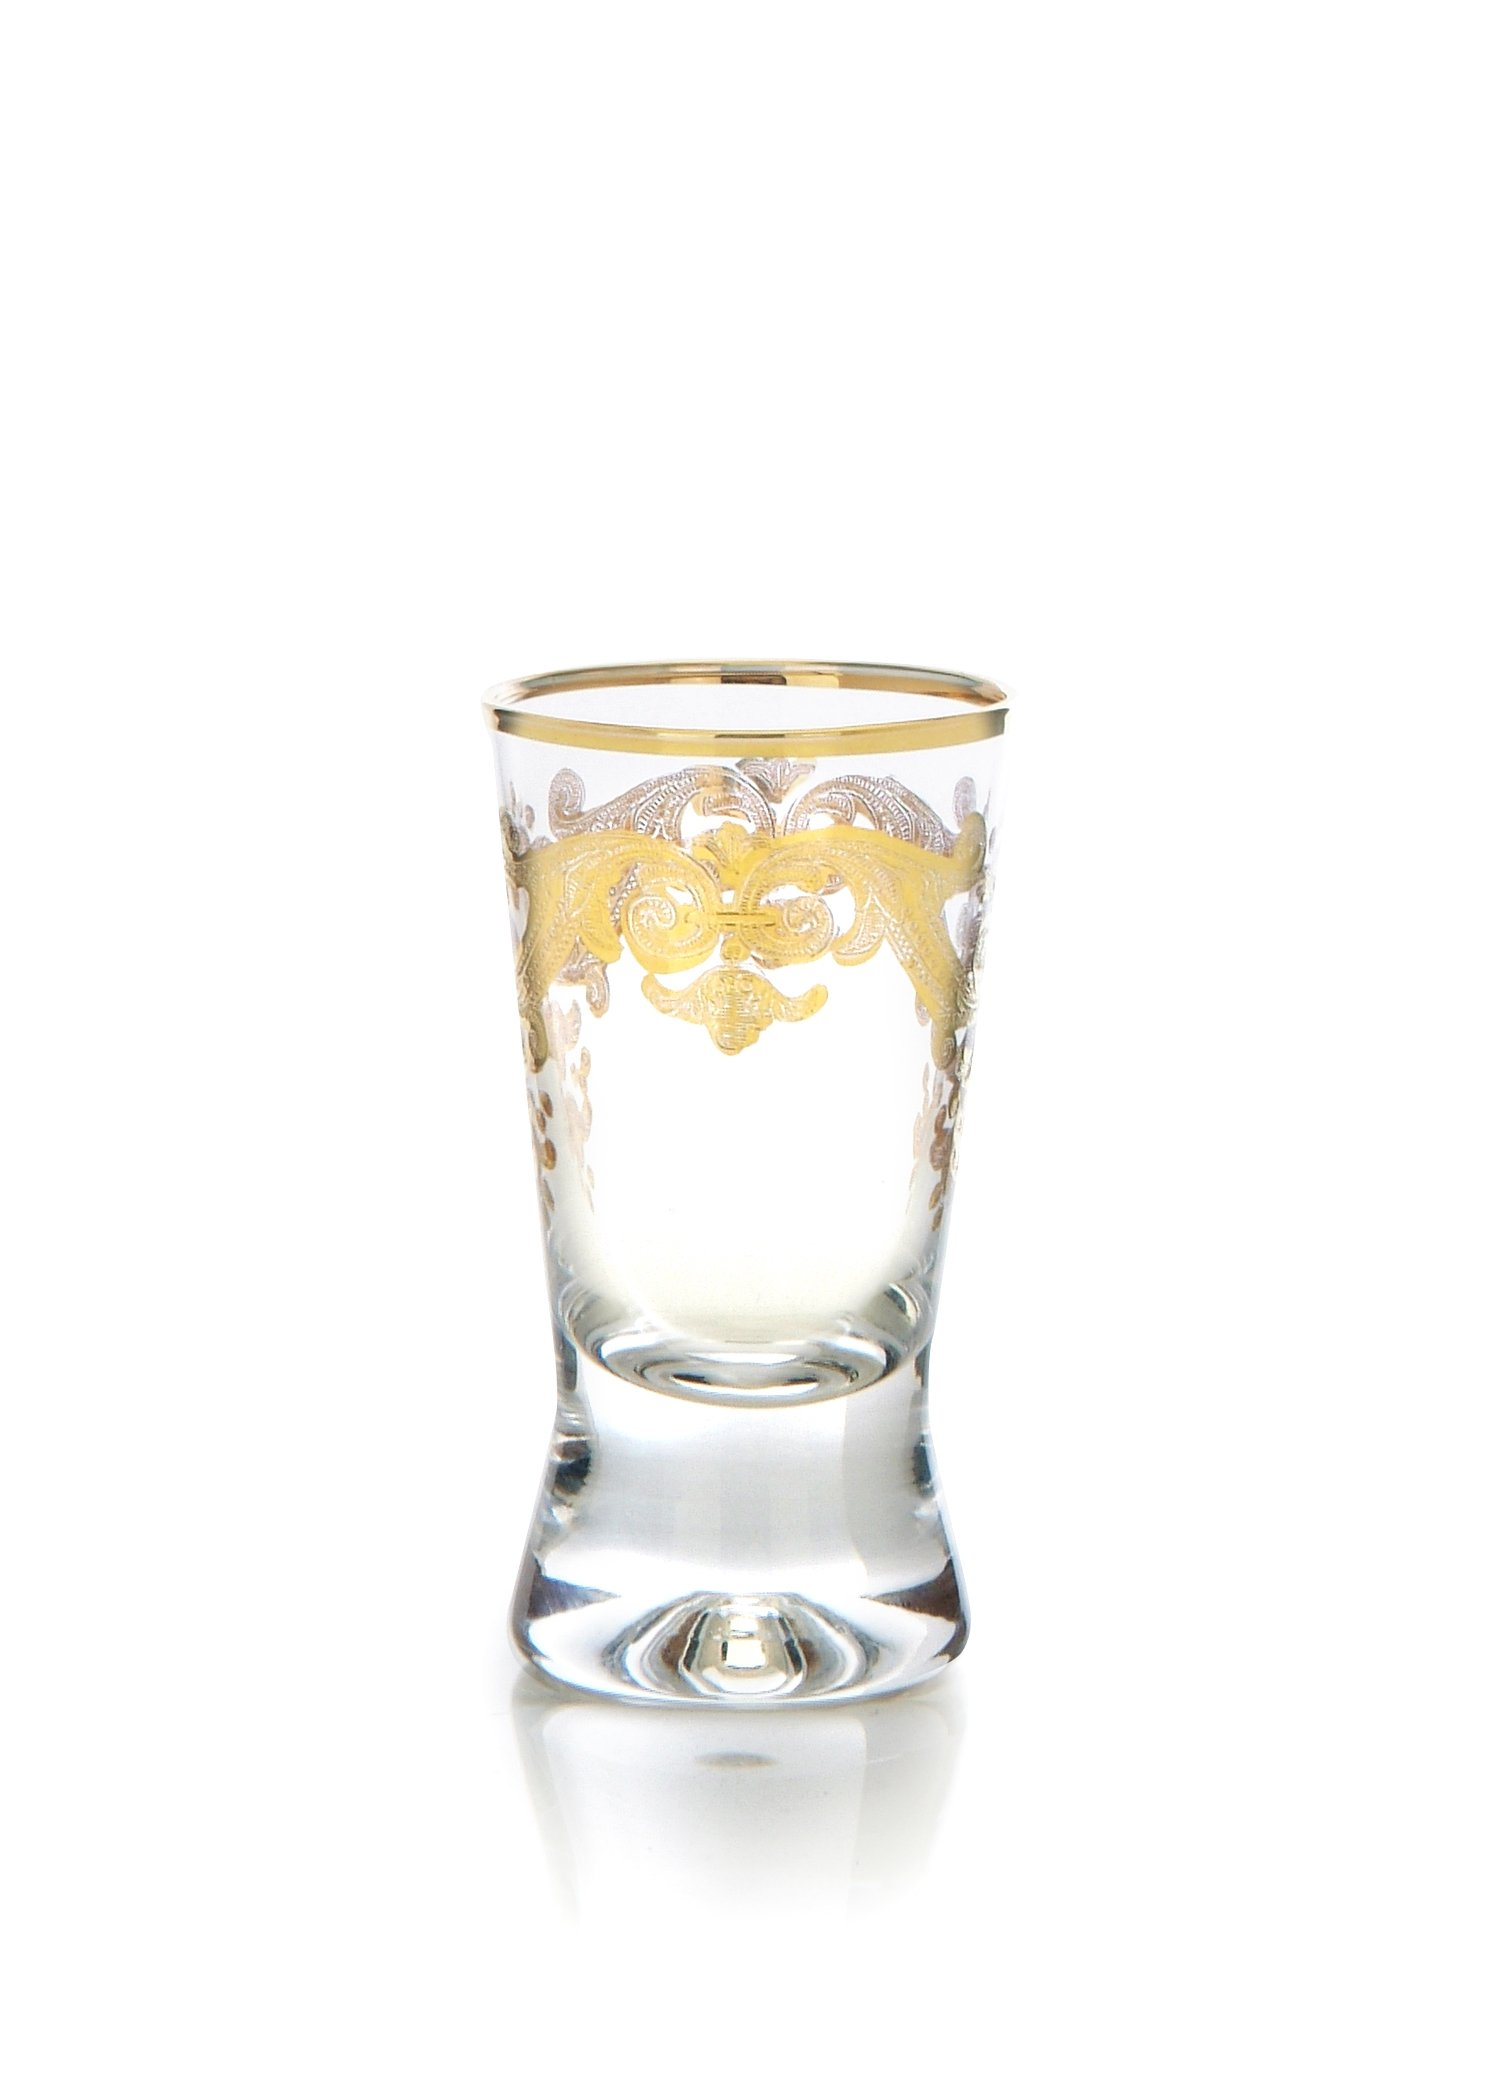 Classic Touch CLGG610 Liqueur Glasses with 24K Gold Artwork, Set of 6